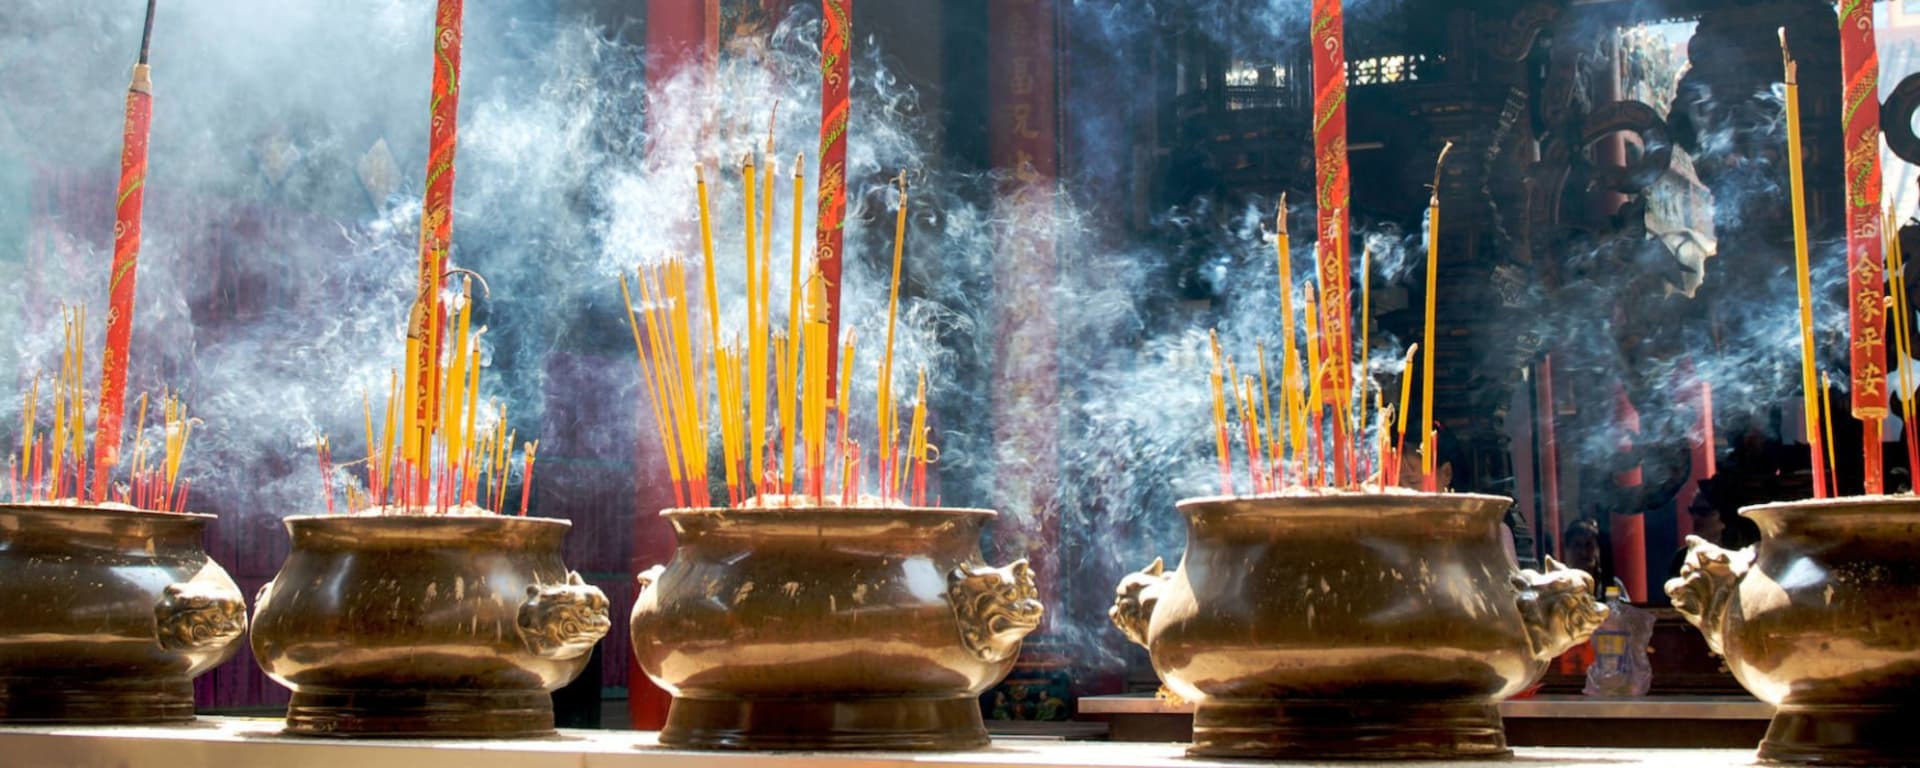 Wissenswertes zu Vietnam Reisen und Ferien: Smoking prayer sticks in copper urns at Thien Hau Pagoda Saigon